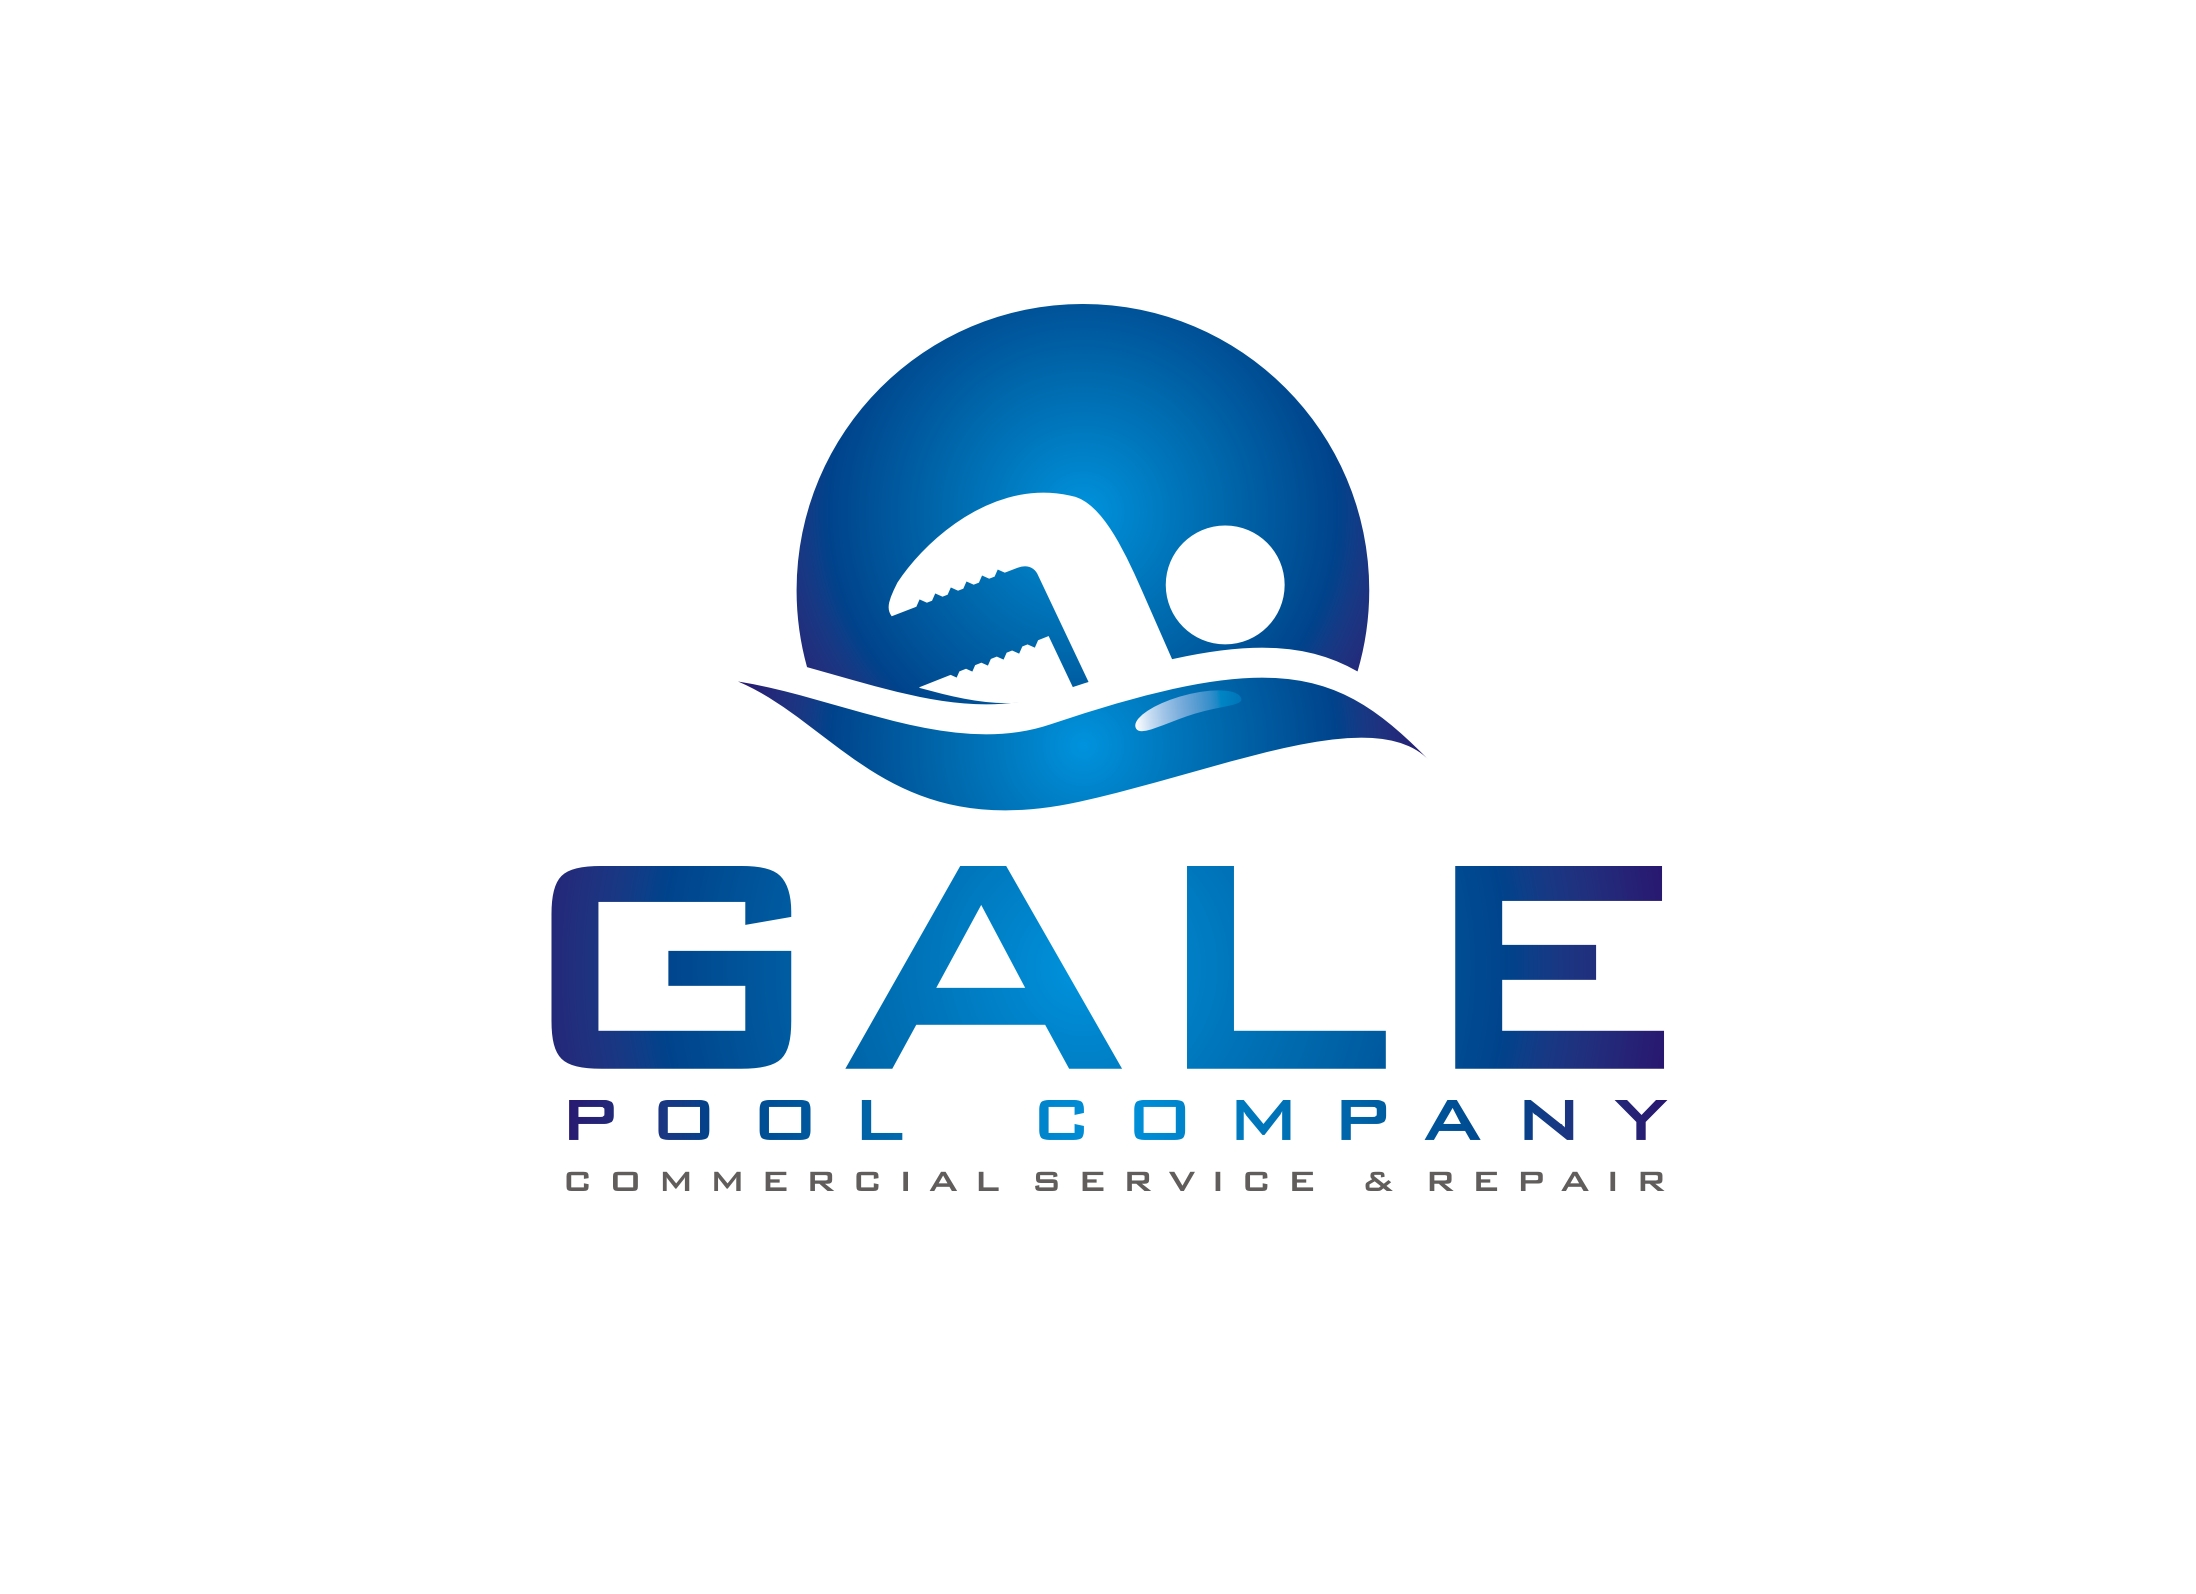 Logo Design by Zdravko Krulj - Entry No. 98 in the Logo Design Contest Imaginative Logo Design for Gale Pool Company.